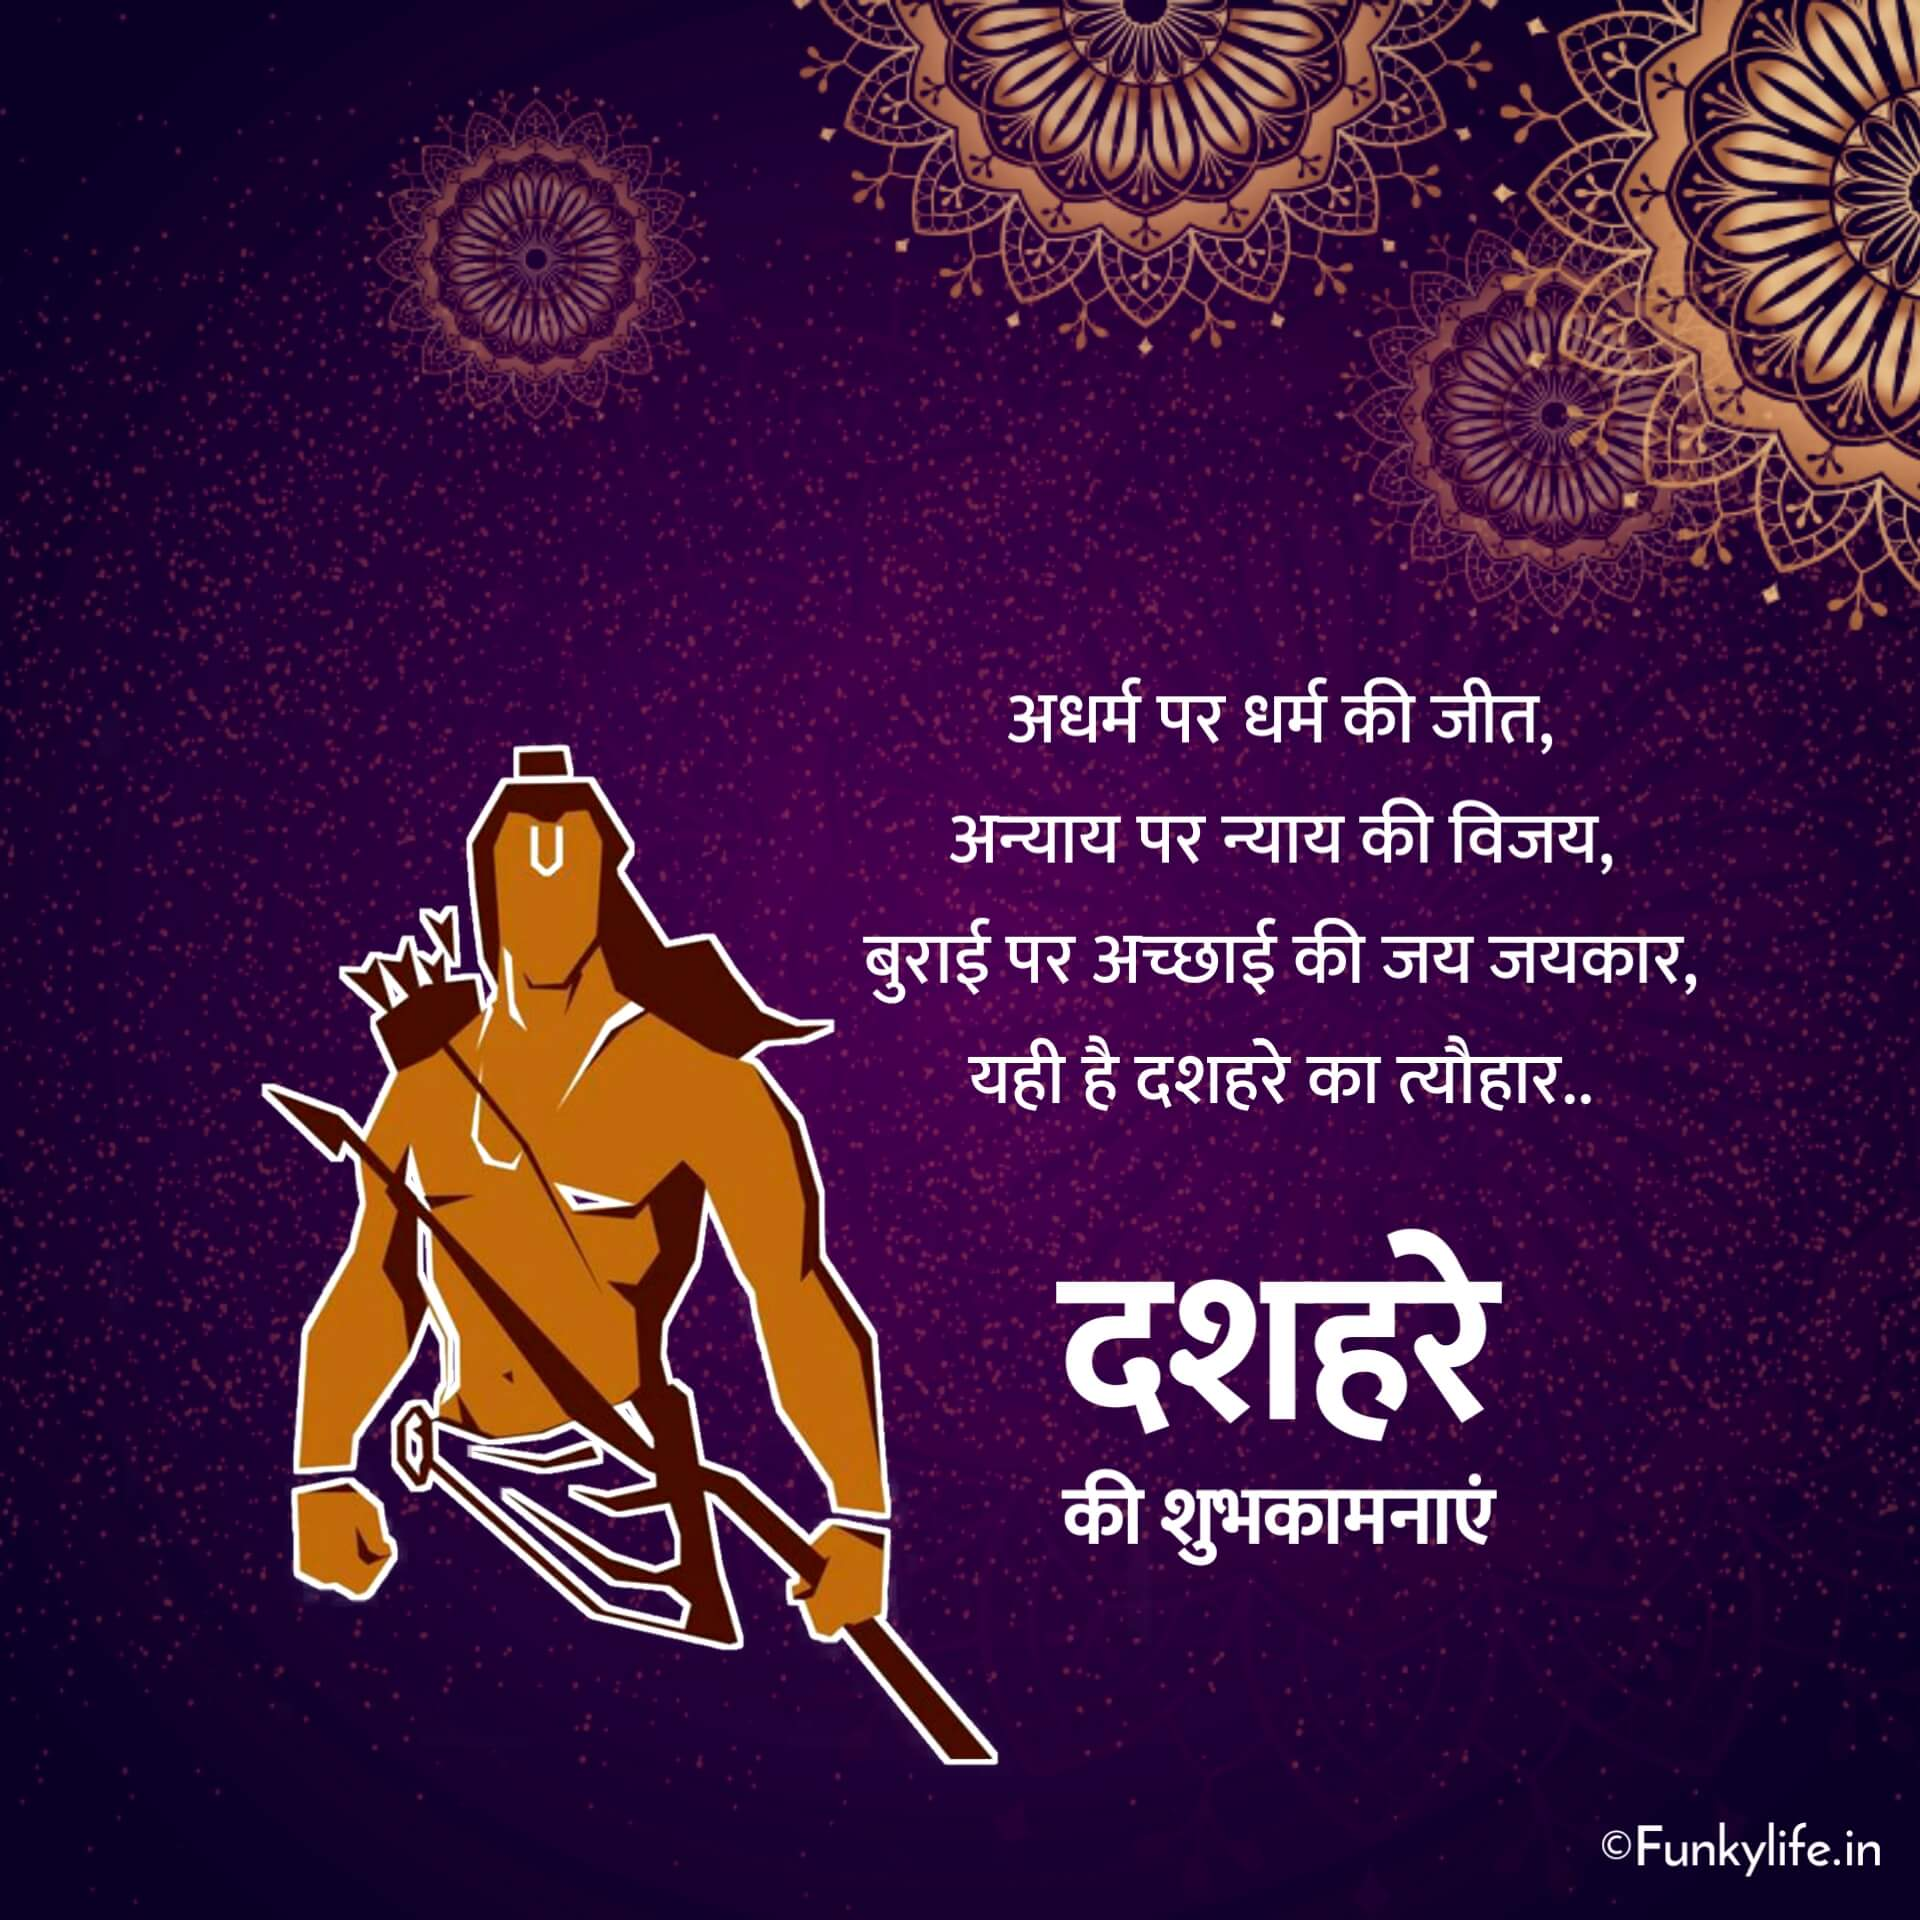 Happy Dussehra Images in Hindi